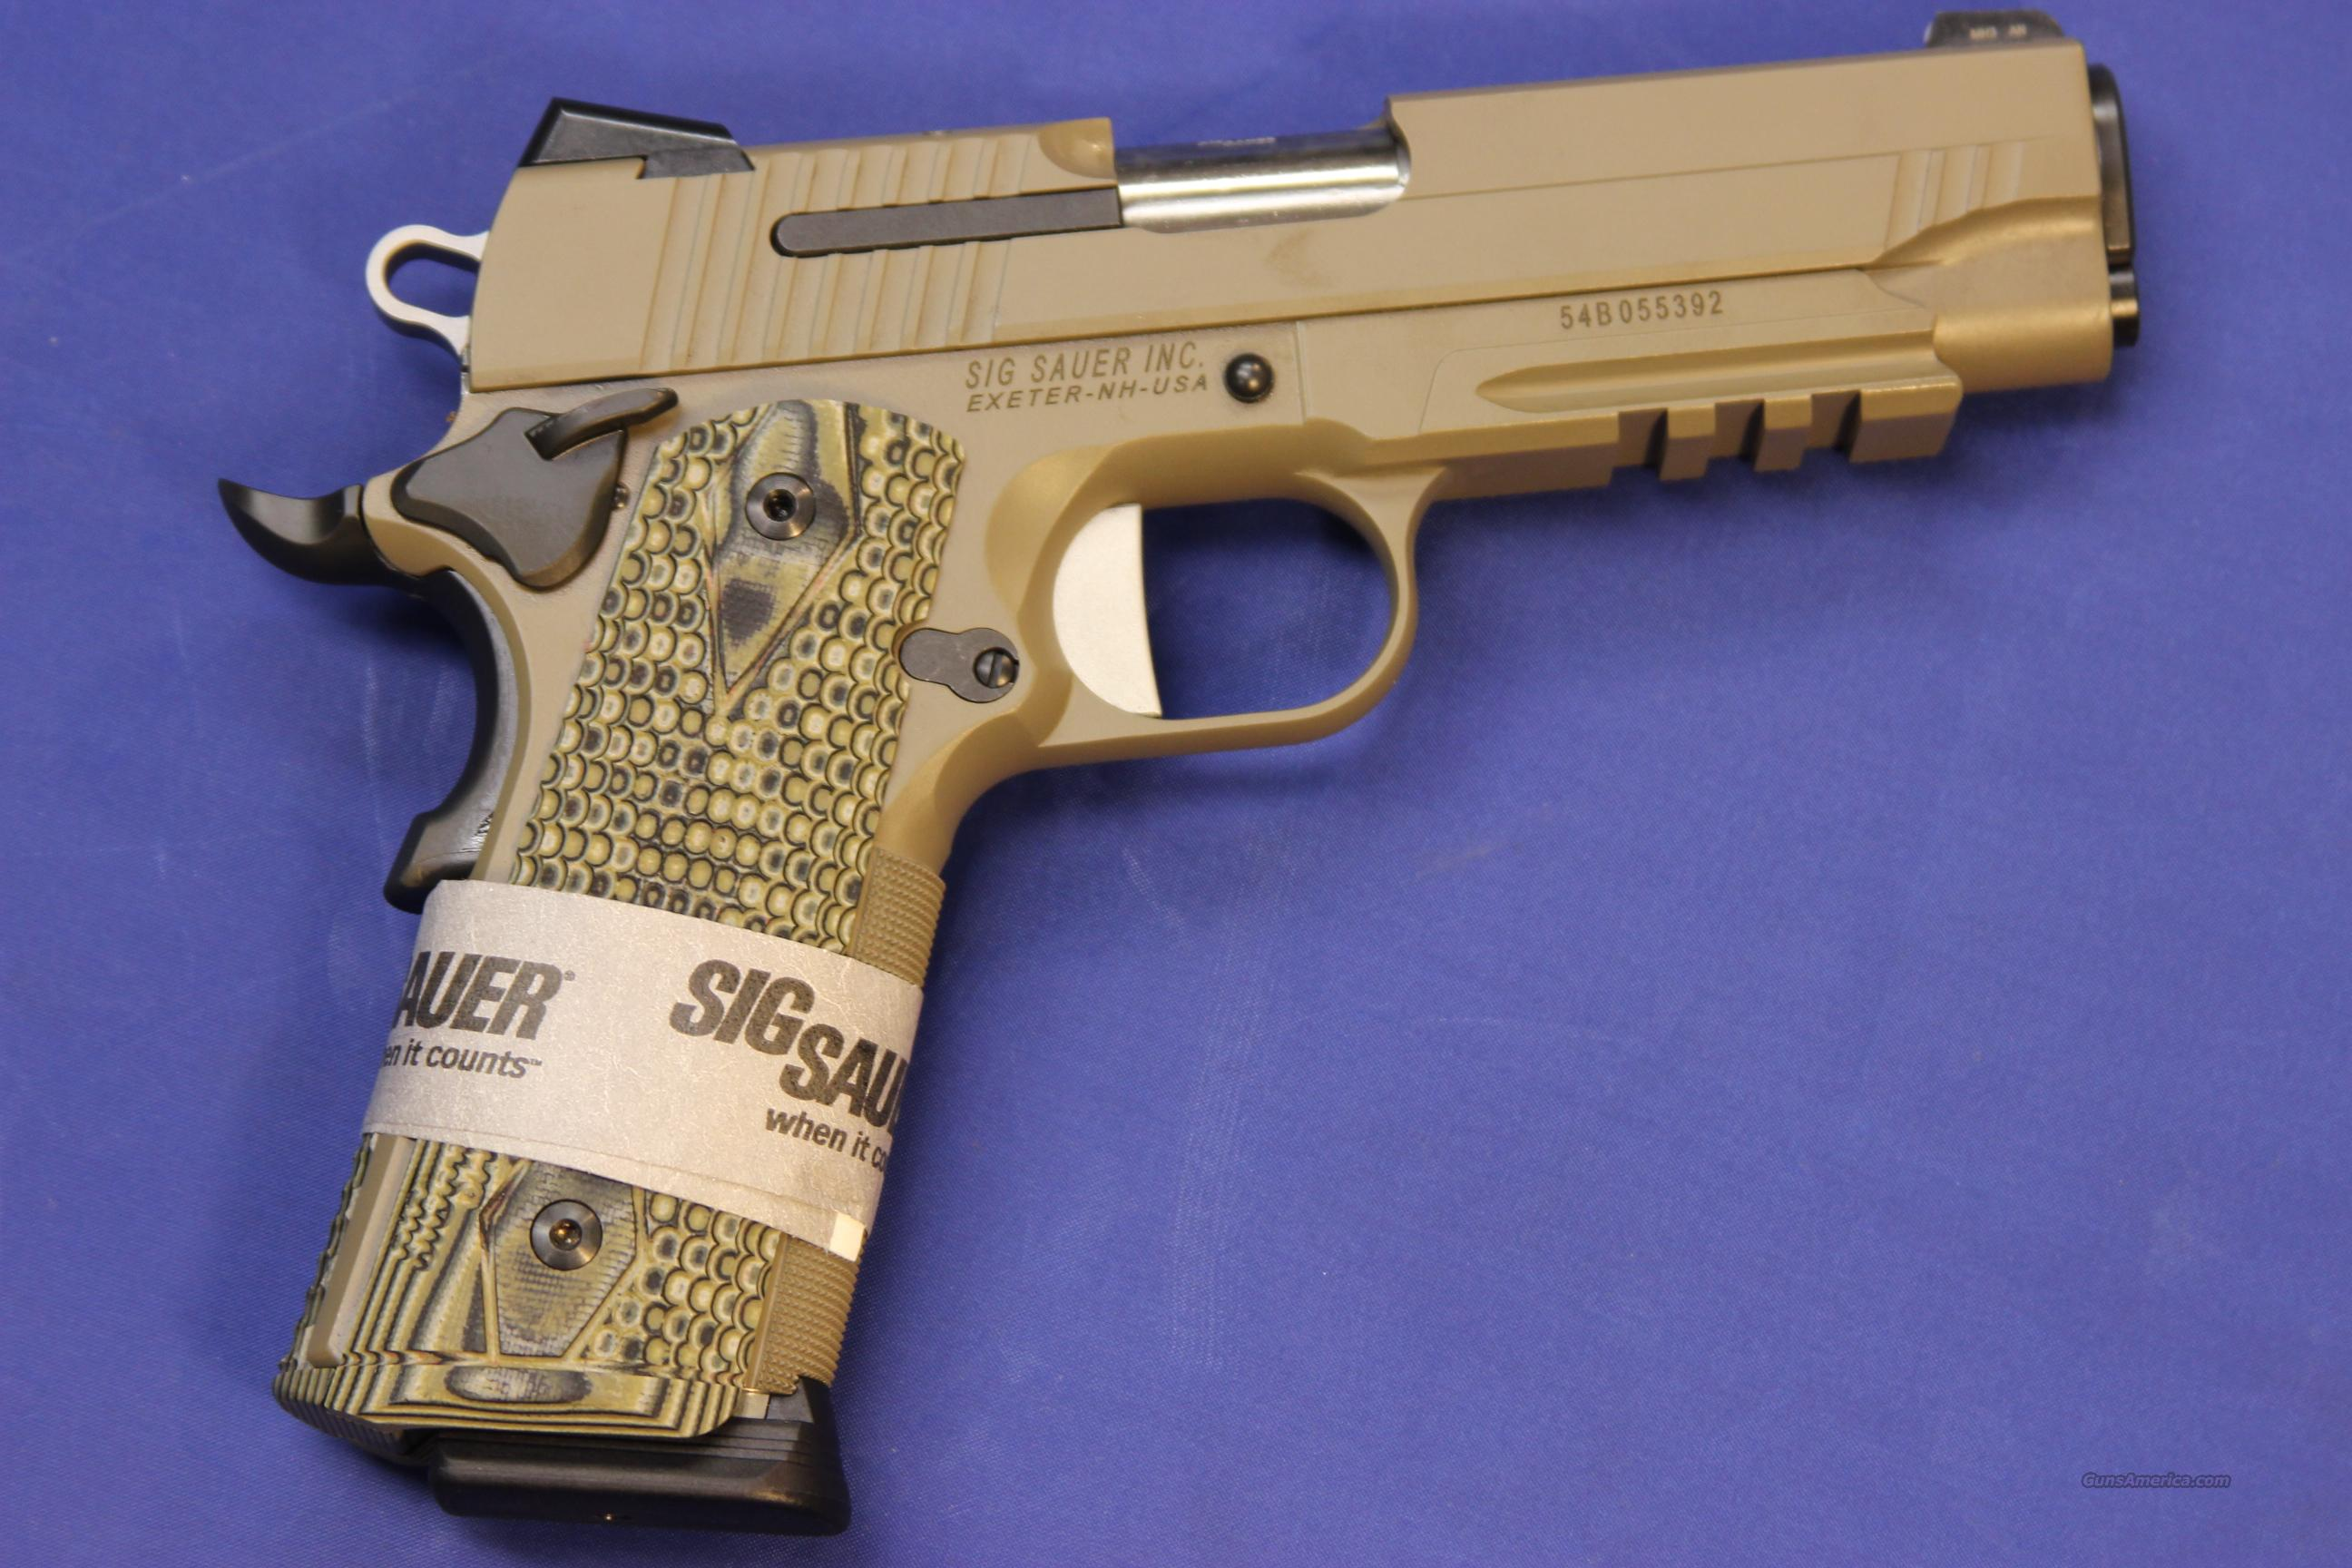 SIG SAUER 1911 CARRY SCORPION .45 ACP - NEW!  Guns > Pistols > Sig - Sauer/Sigarms Pistols > 1911